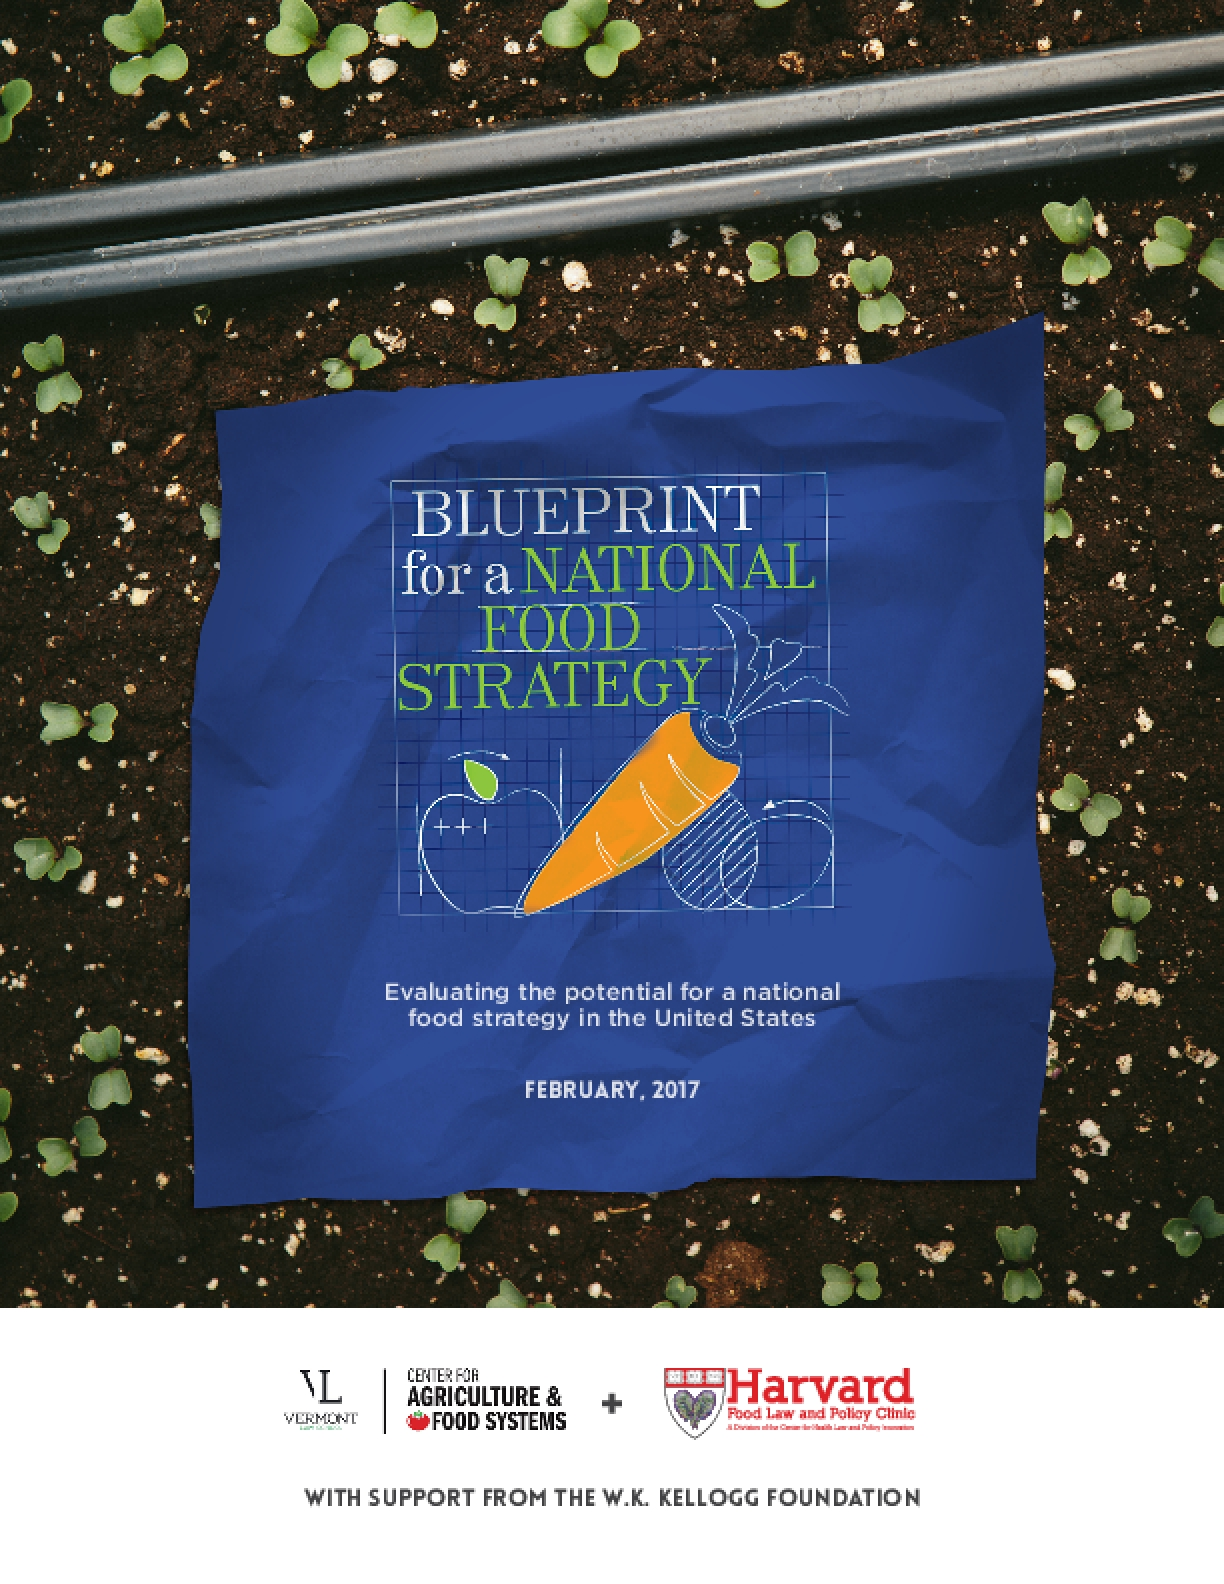 Blueprint for a National Food Strategy: Evaluating the Potential for a National Food Strategy in the United States